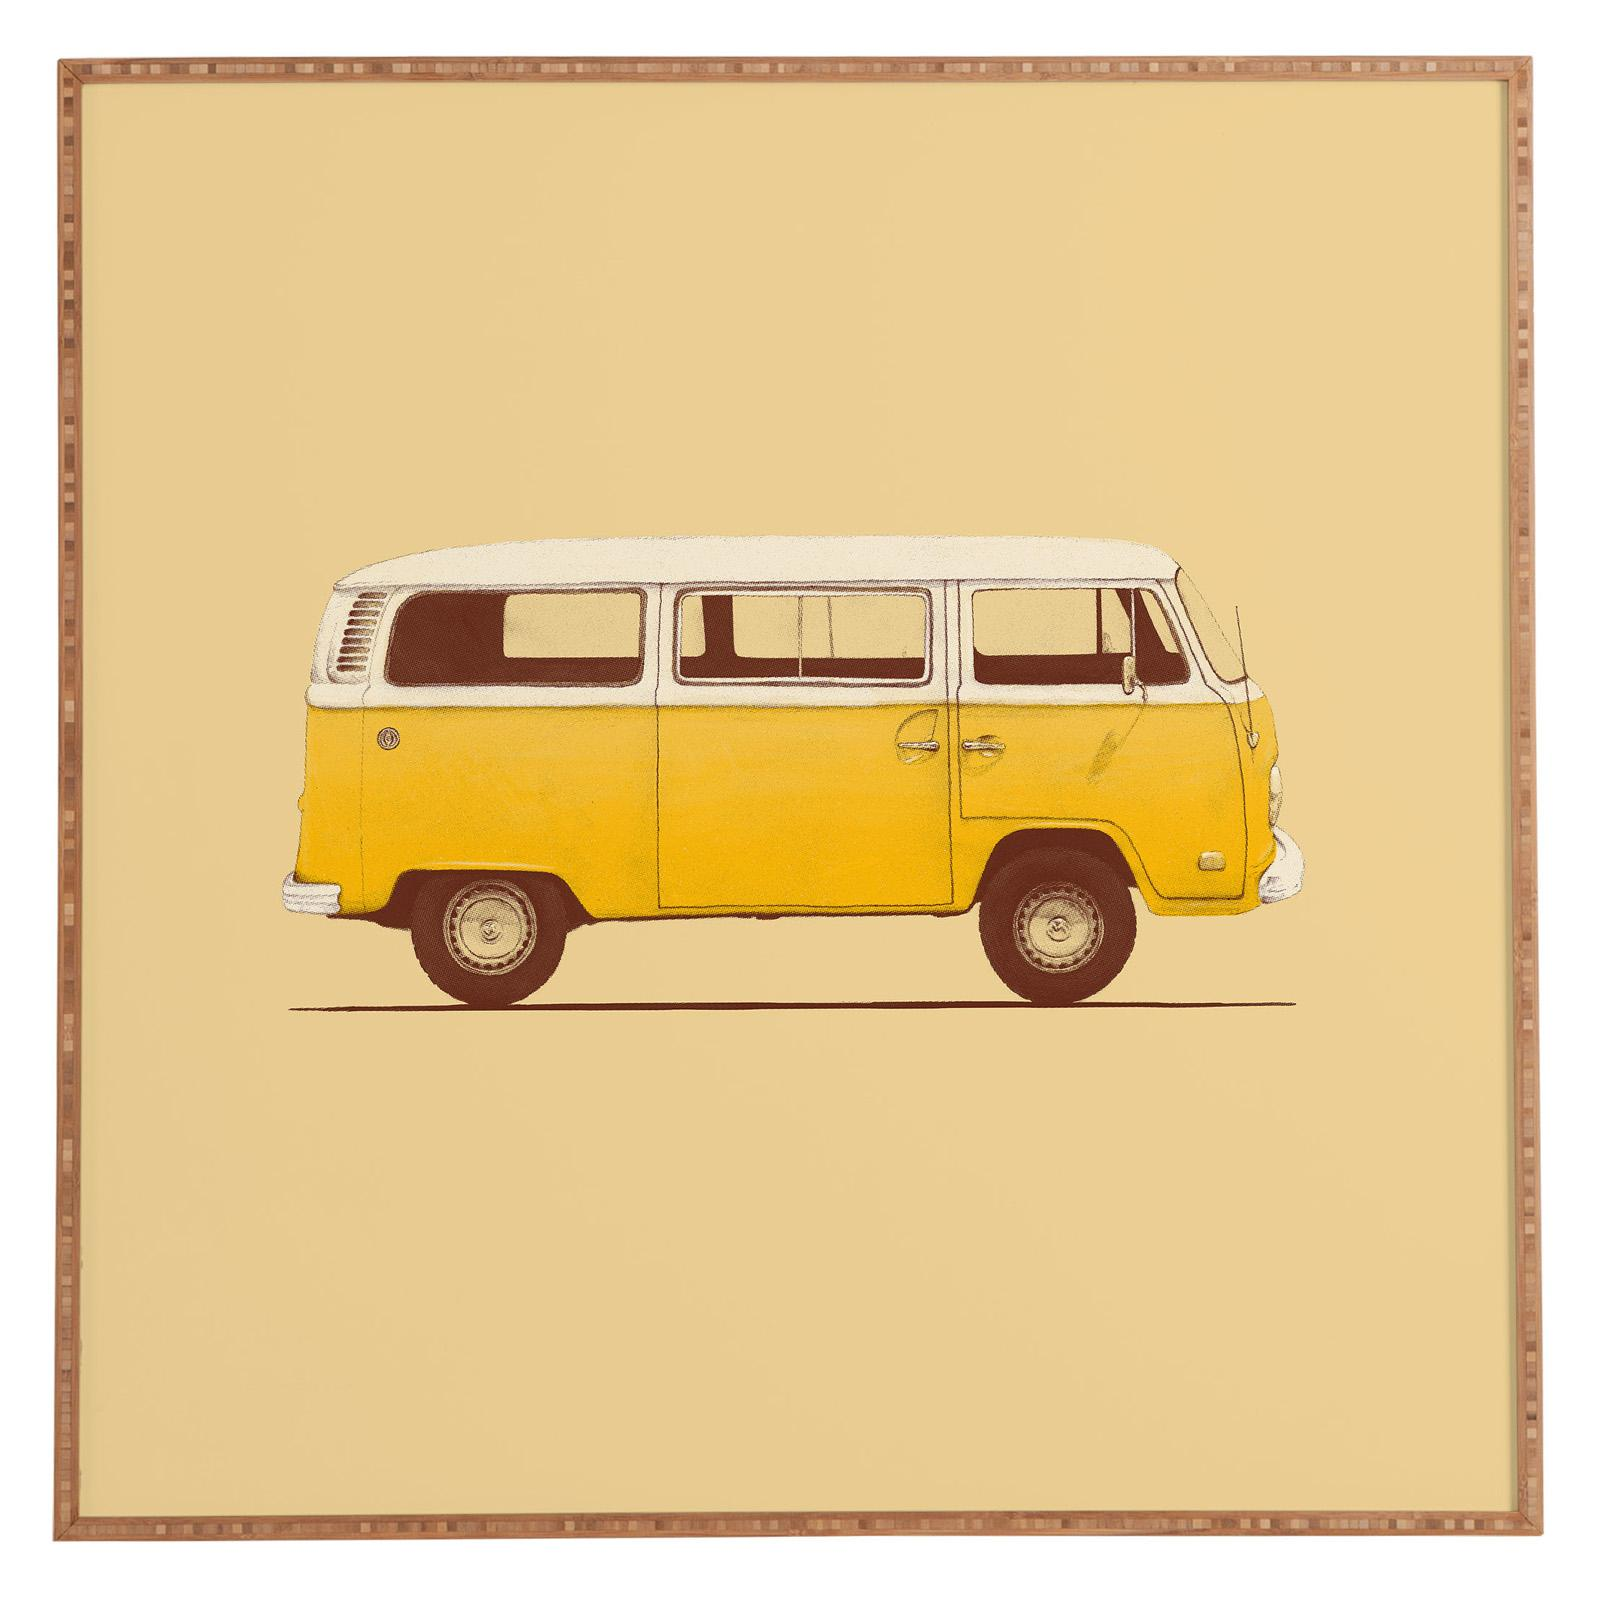 Vw bus wall art | Compare Prices at Nextag